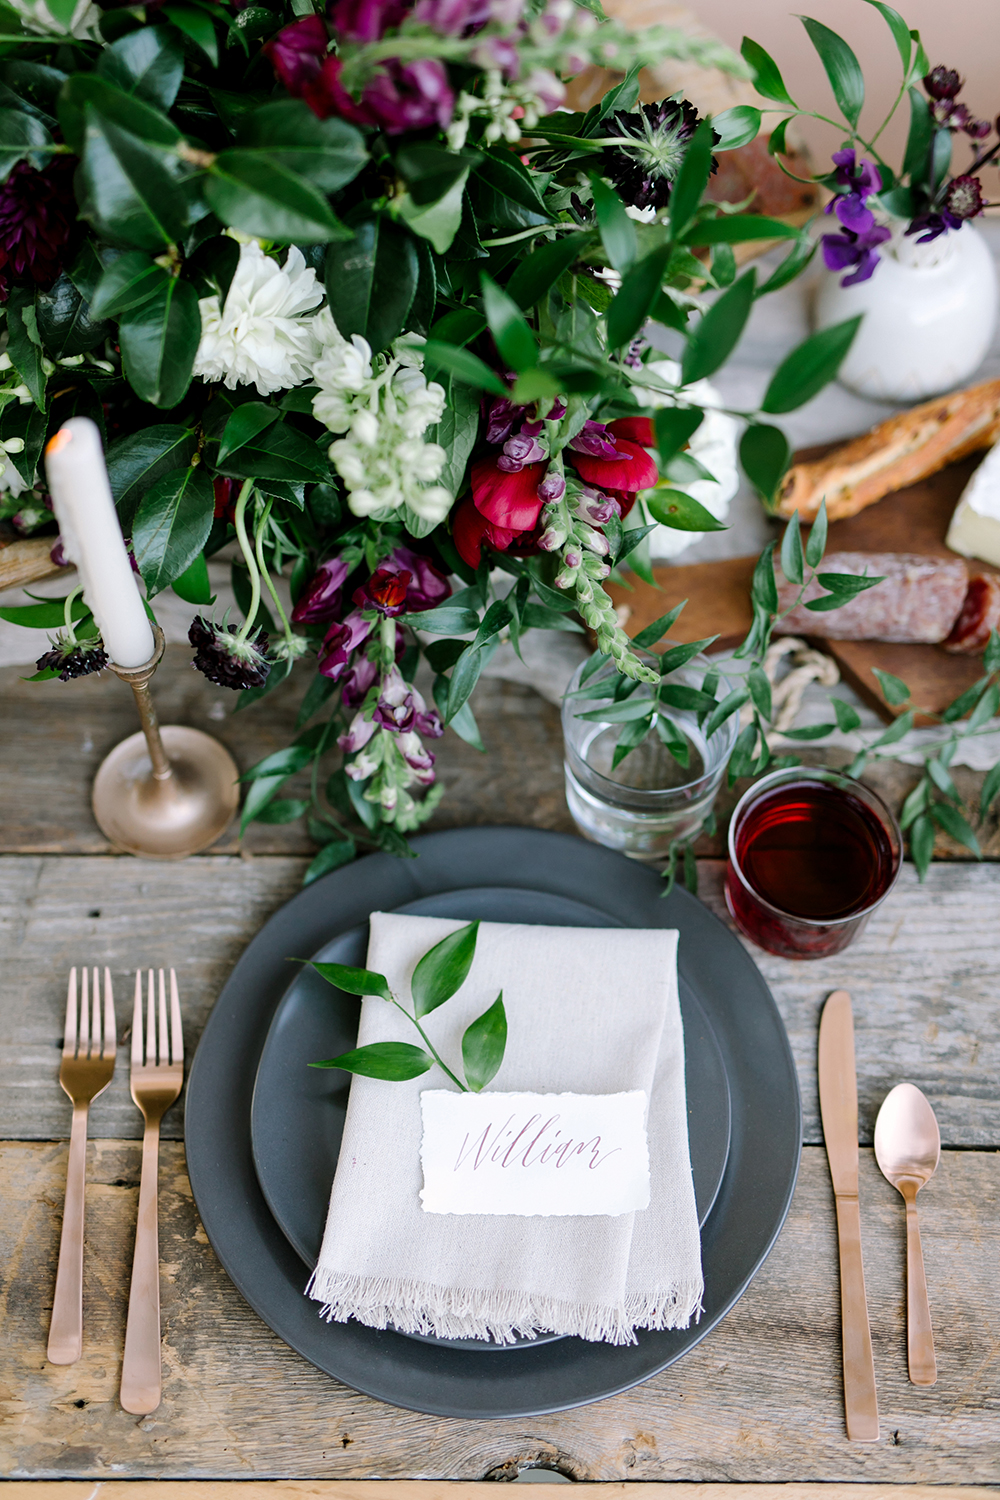 dinner place setting - photo by Julie Wilhite https://ruffledblog.com/european-inspired-jewel-toned-wedding-ideas